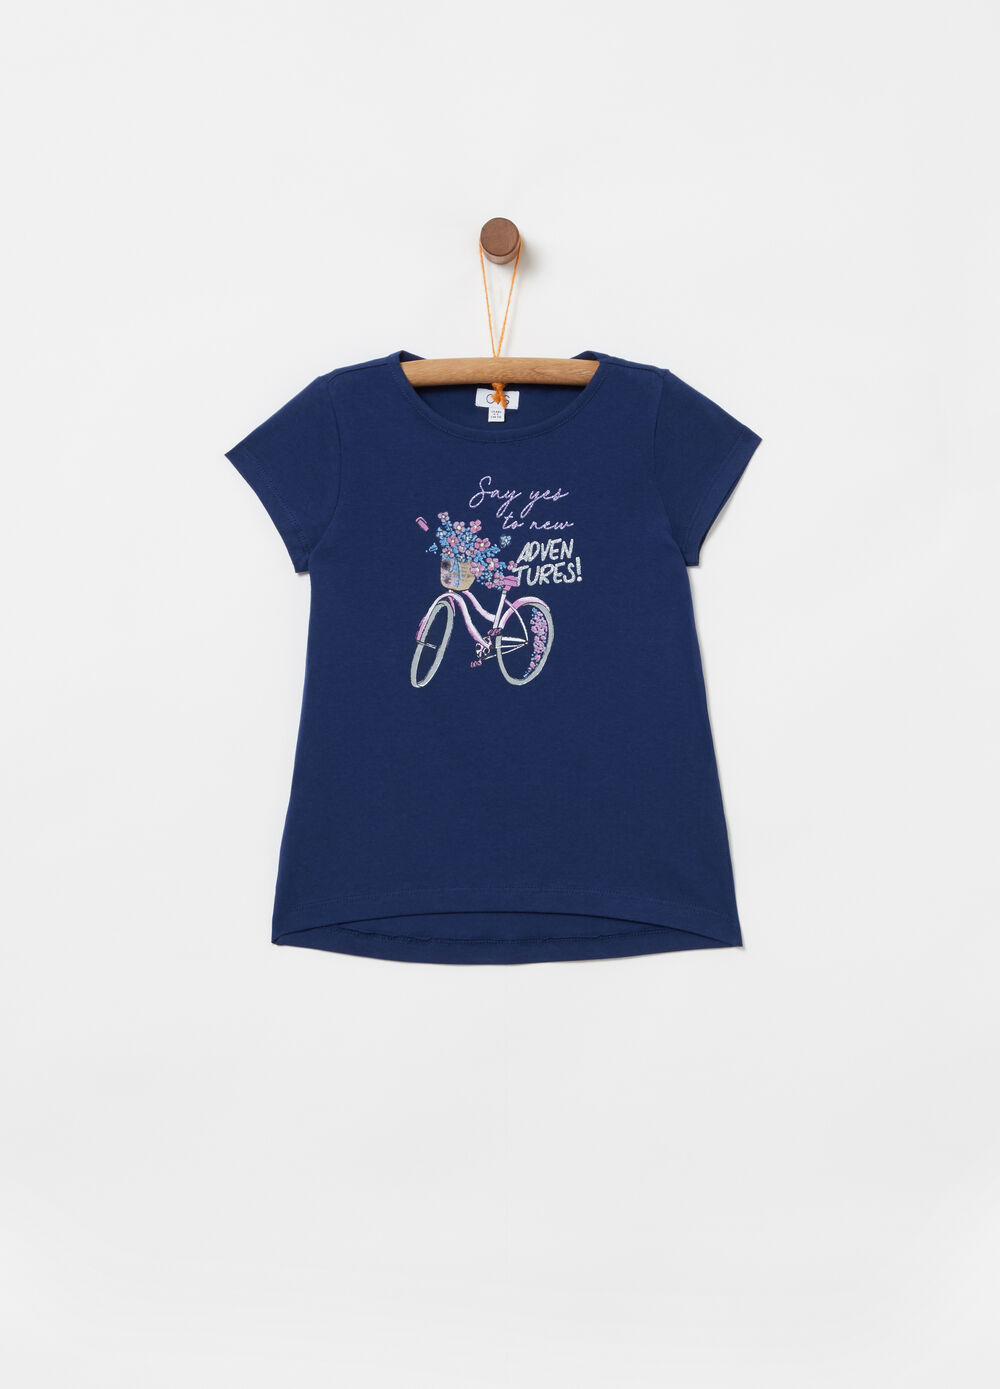 100% cotton T-shirt with glitter bicycle print